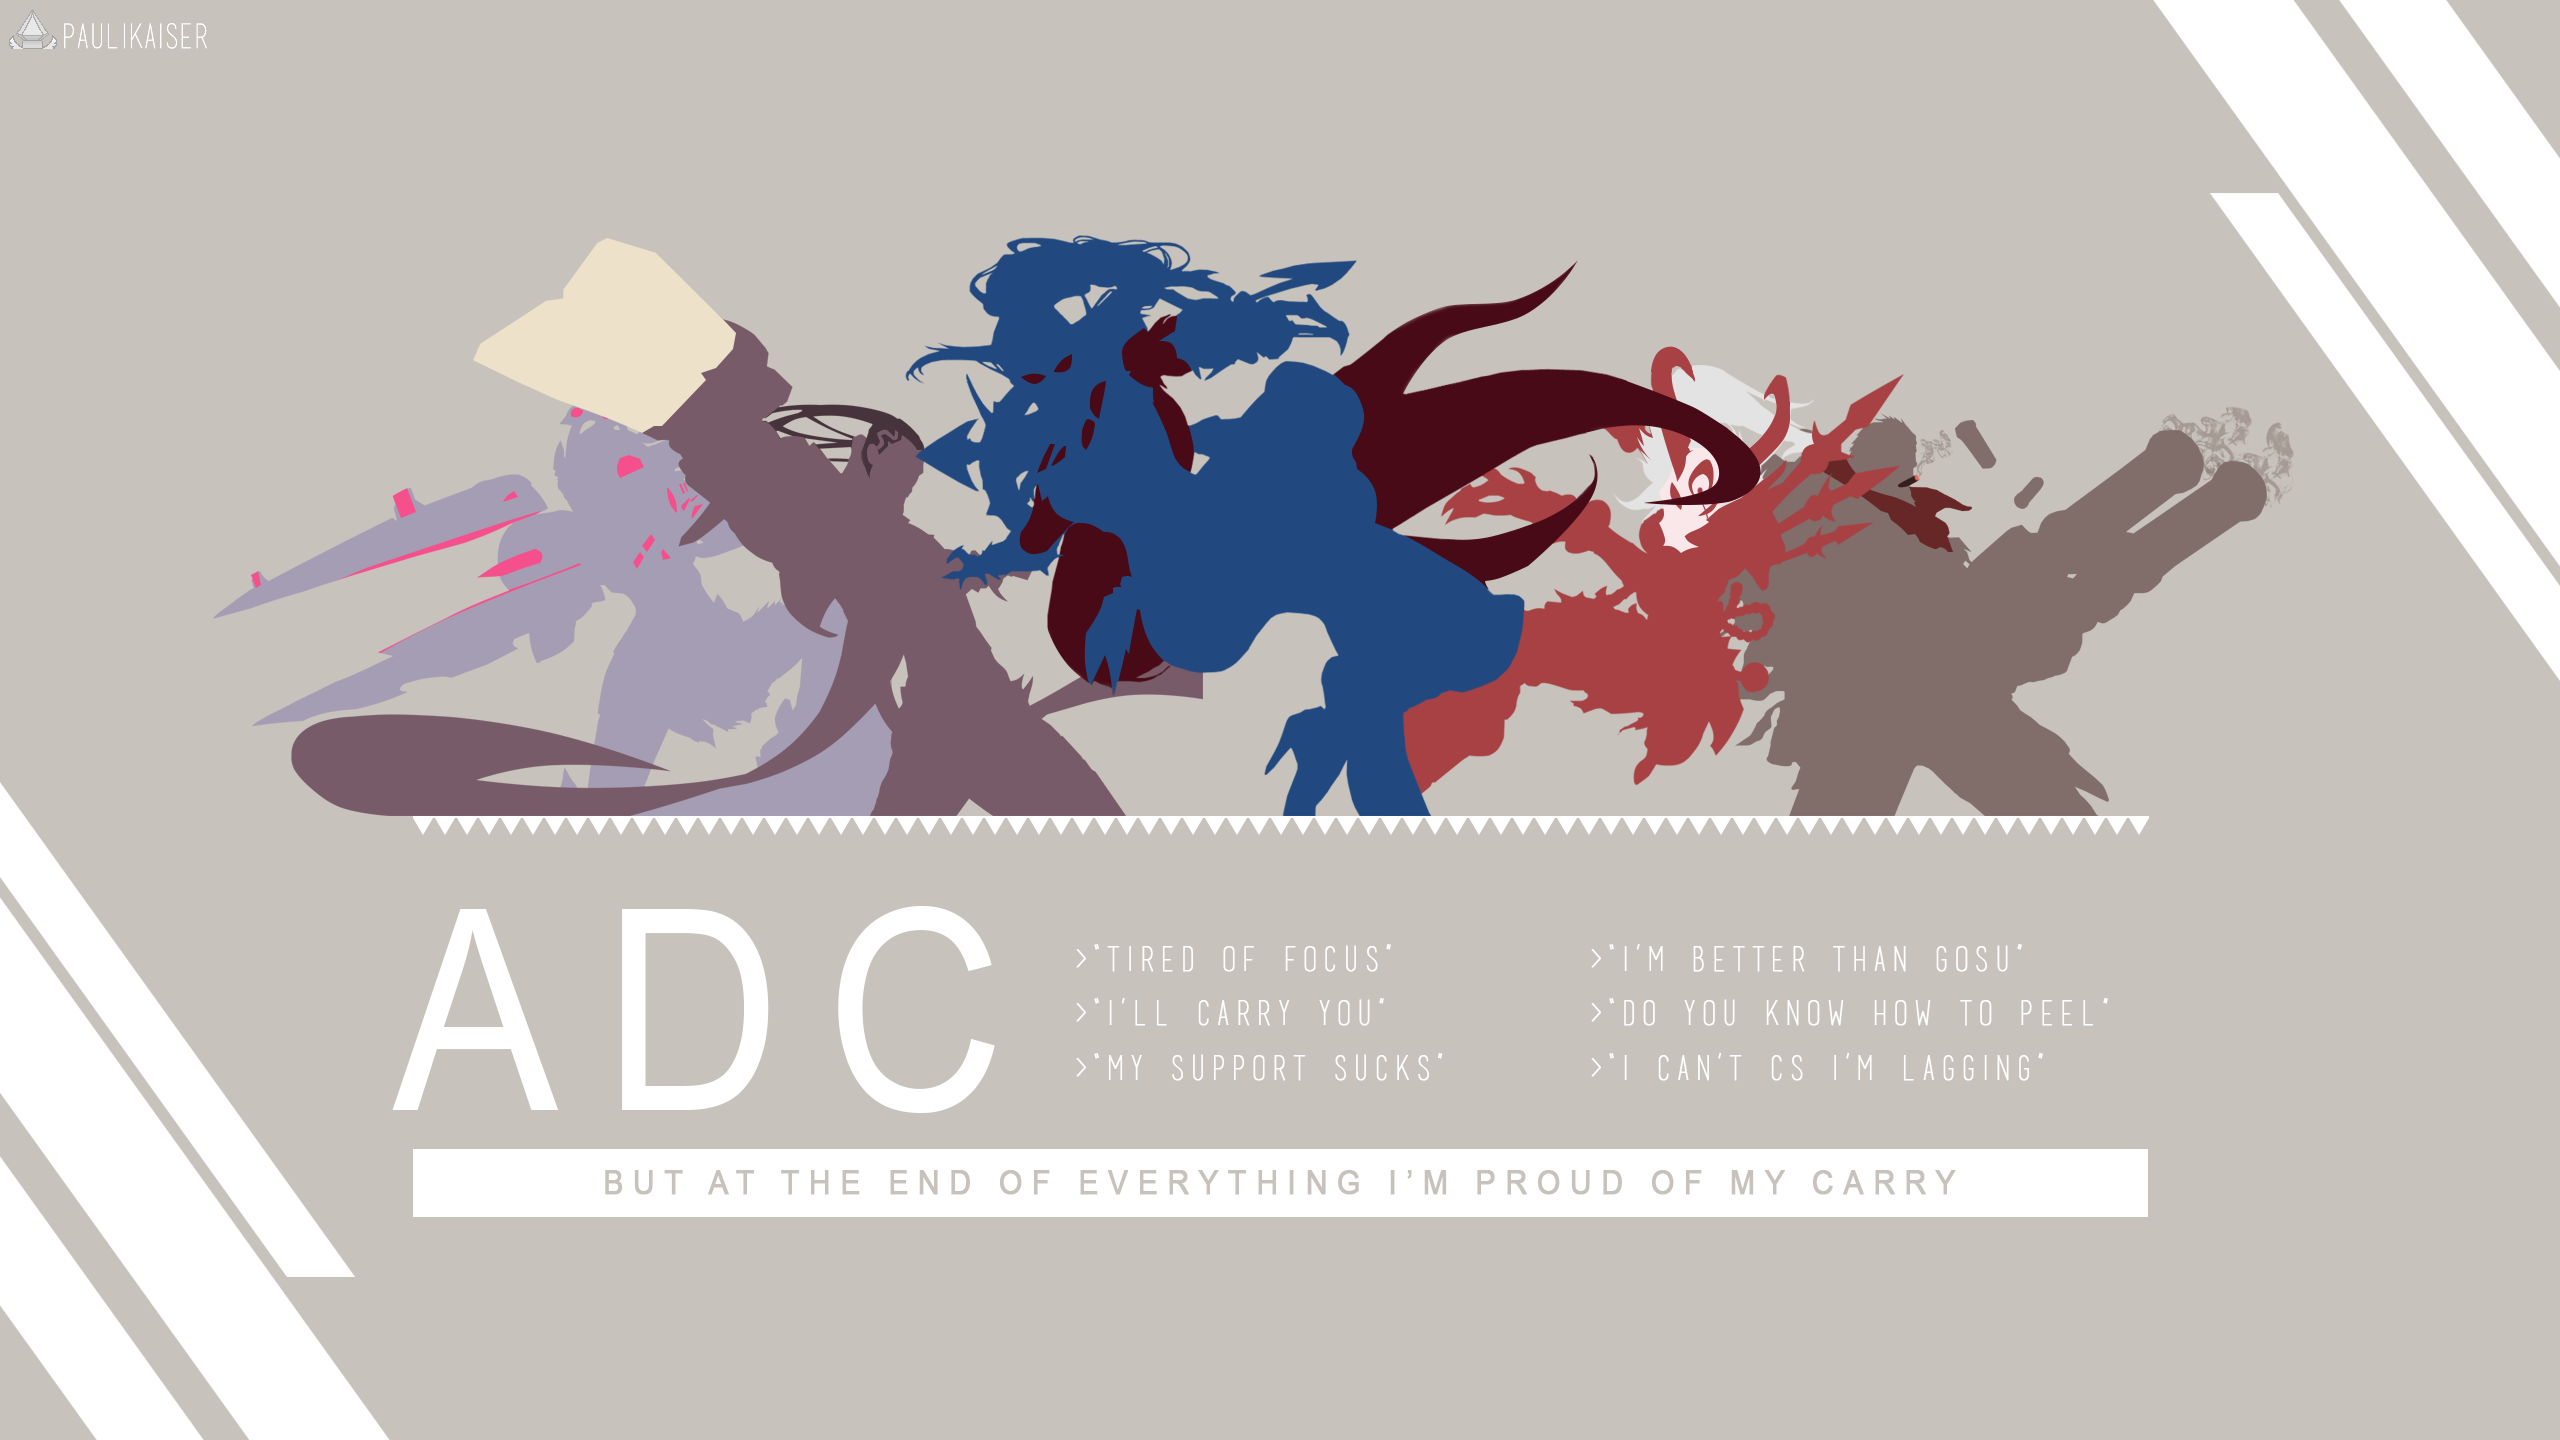 adc_wallpaper__no_maestry__by_paulikaiser-d95knfv